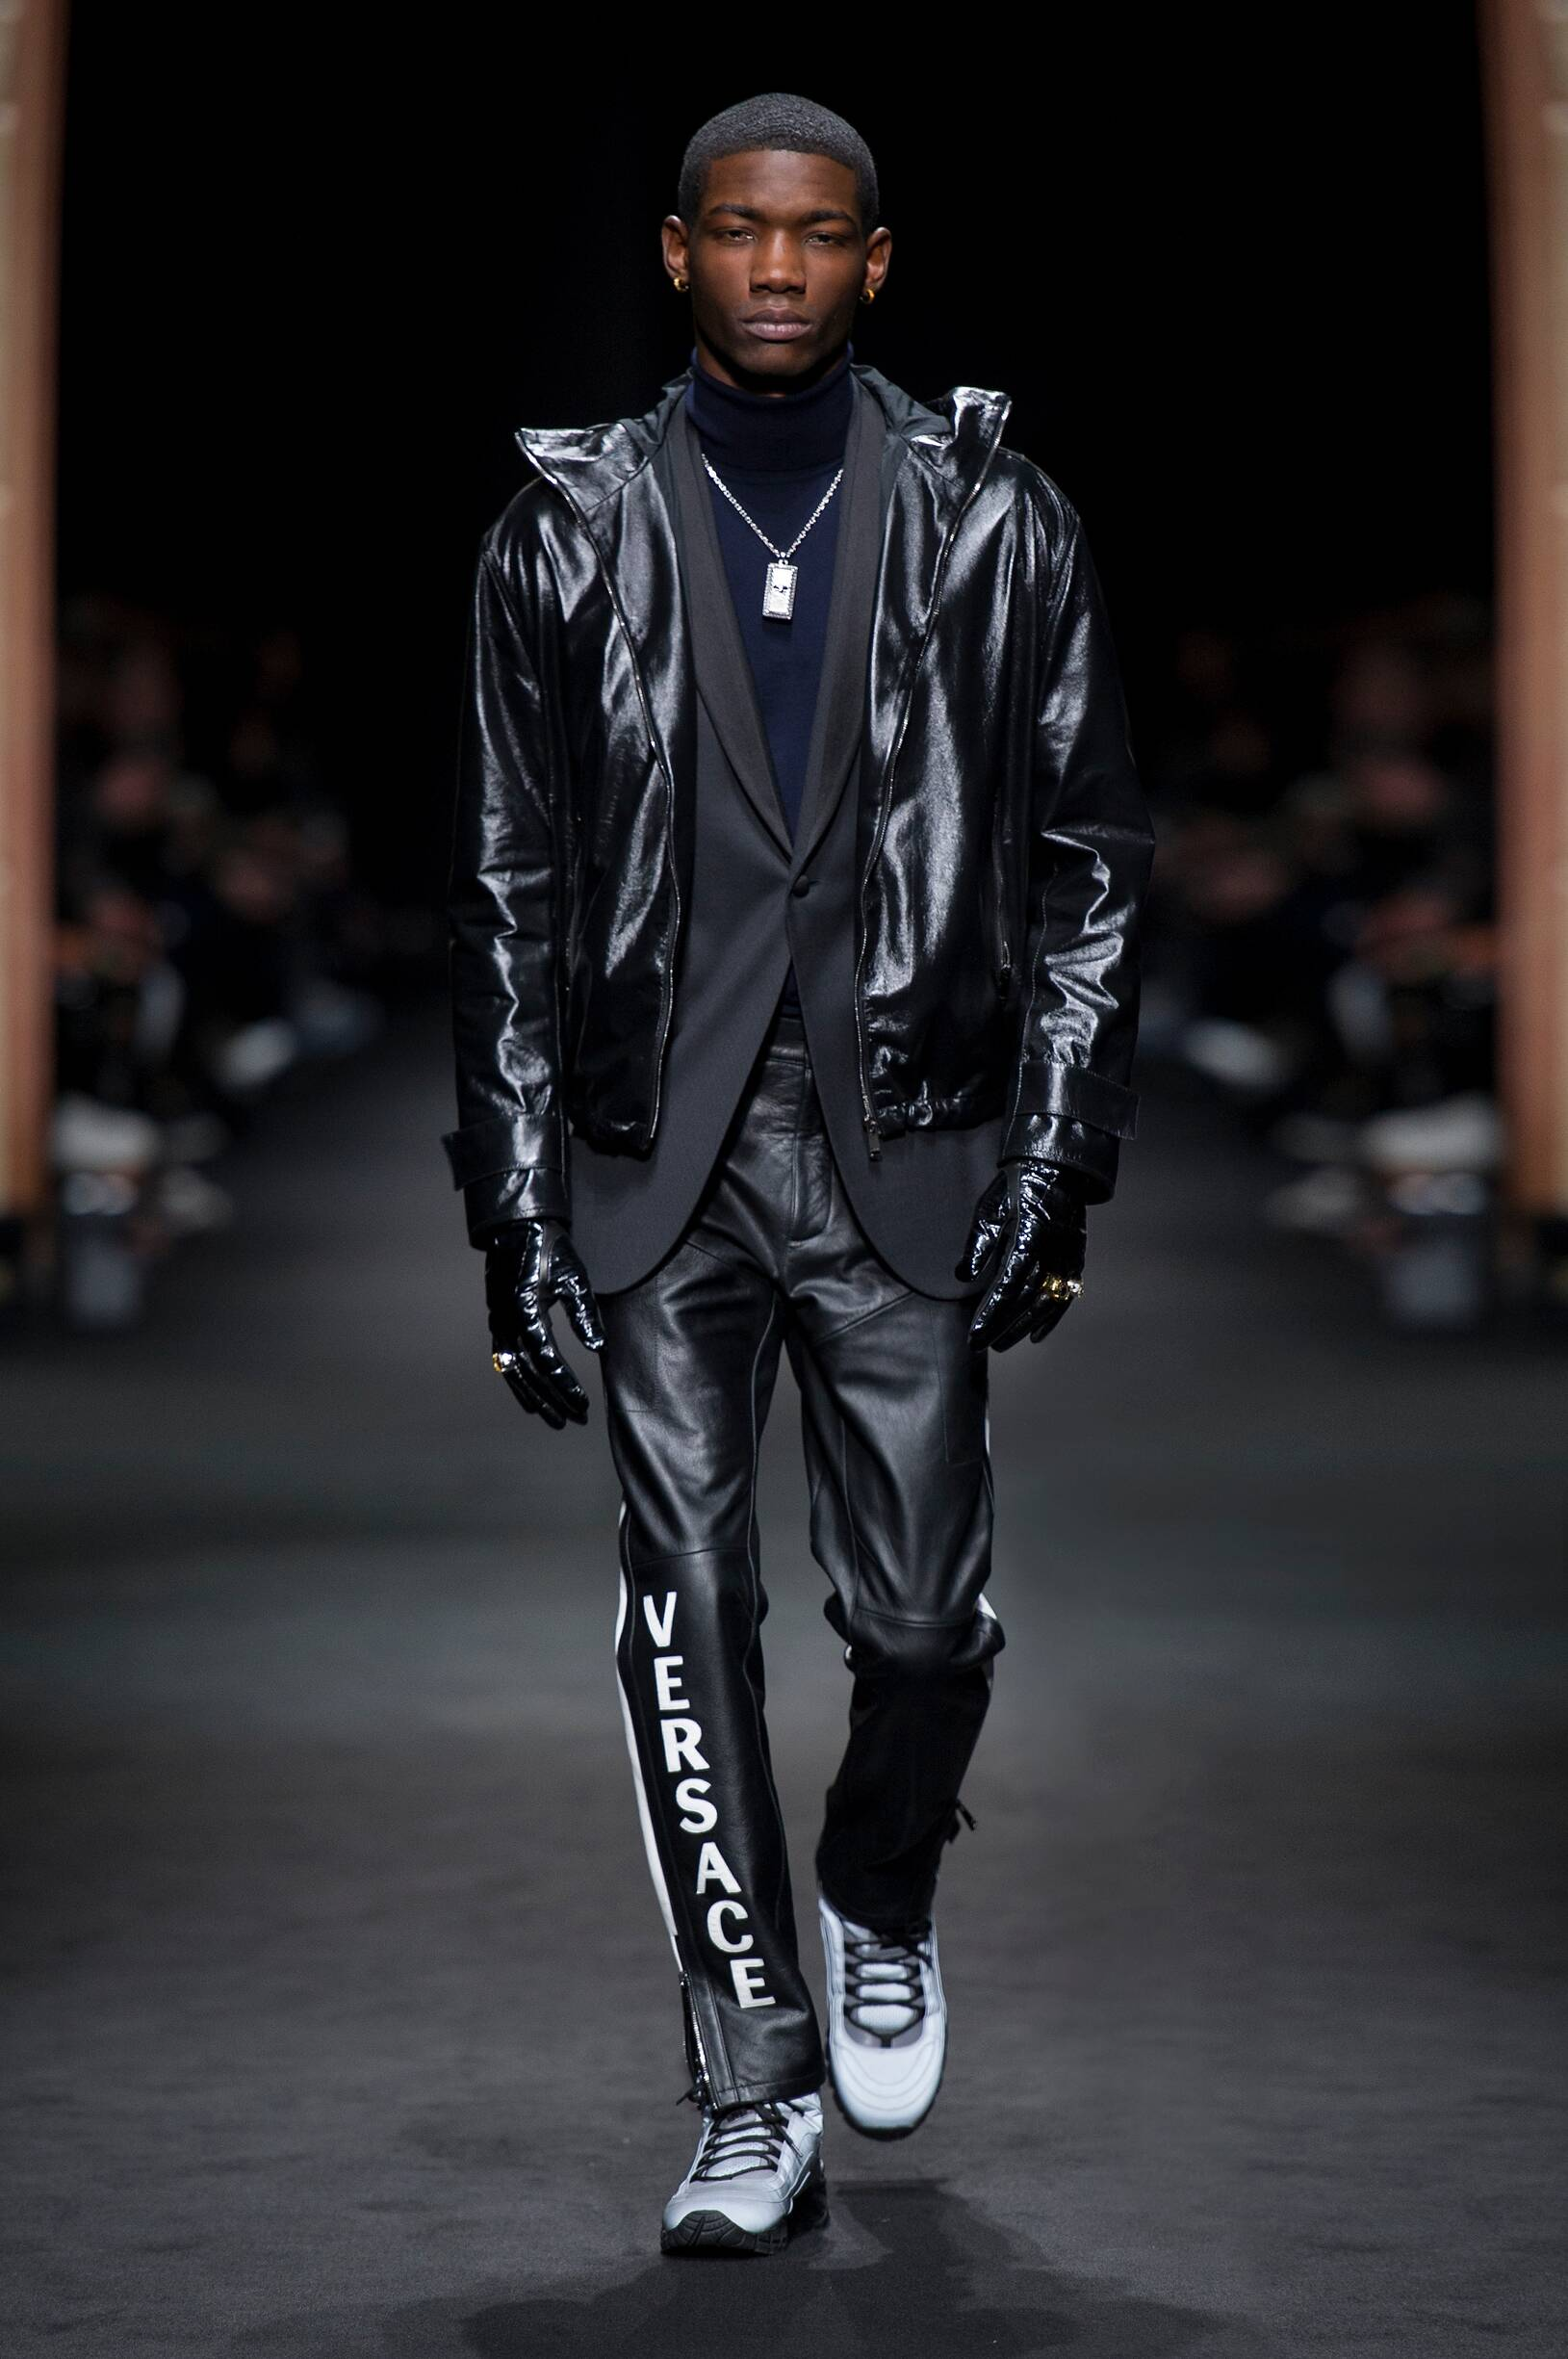 VERSACE FALL WINTER 2017-18 MEN'S COLLECTION